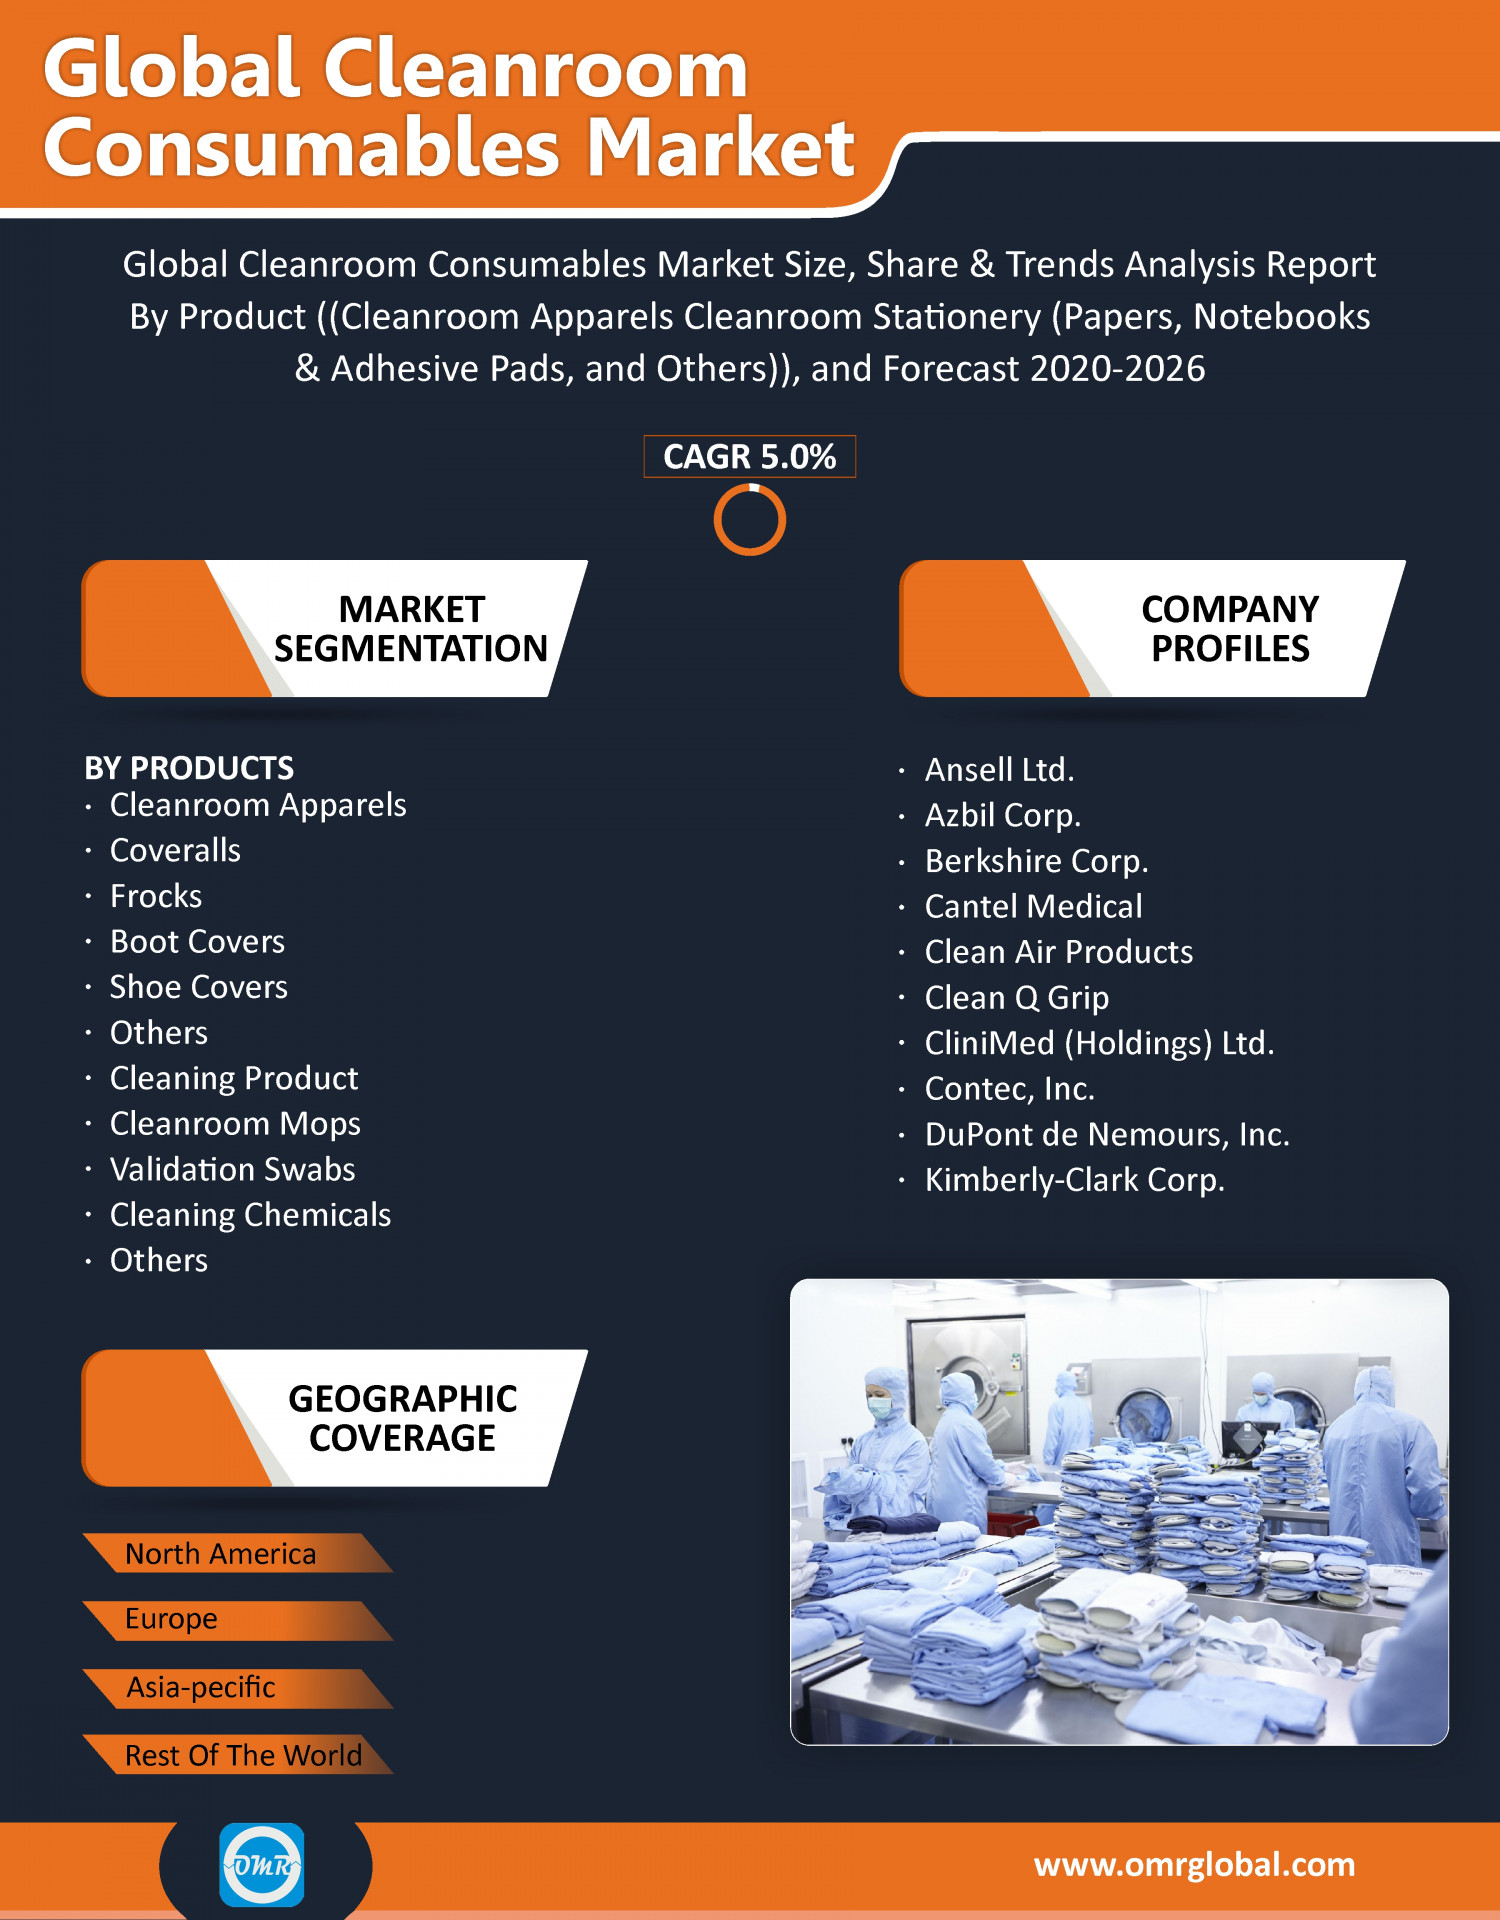 Cleanroom Consumables Market Size, Share, Trends, Analysis and Forecast 2020-2026 Infographic